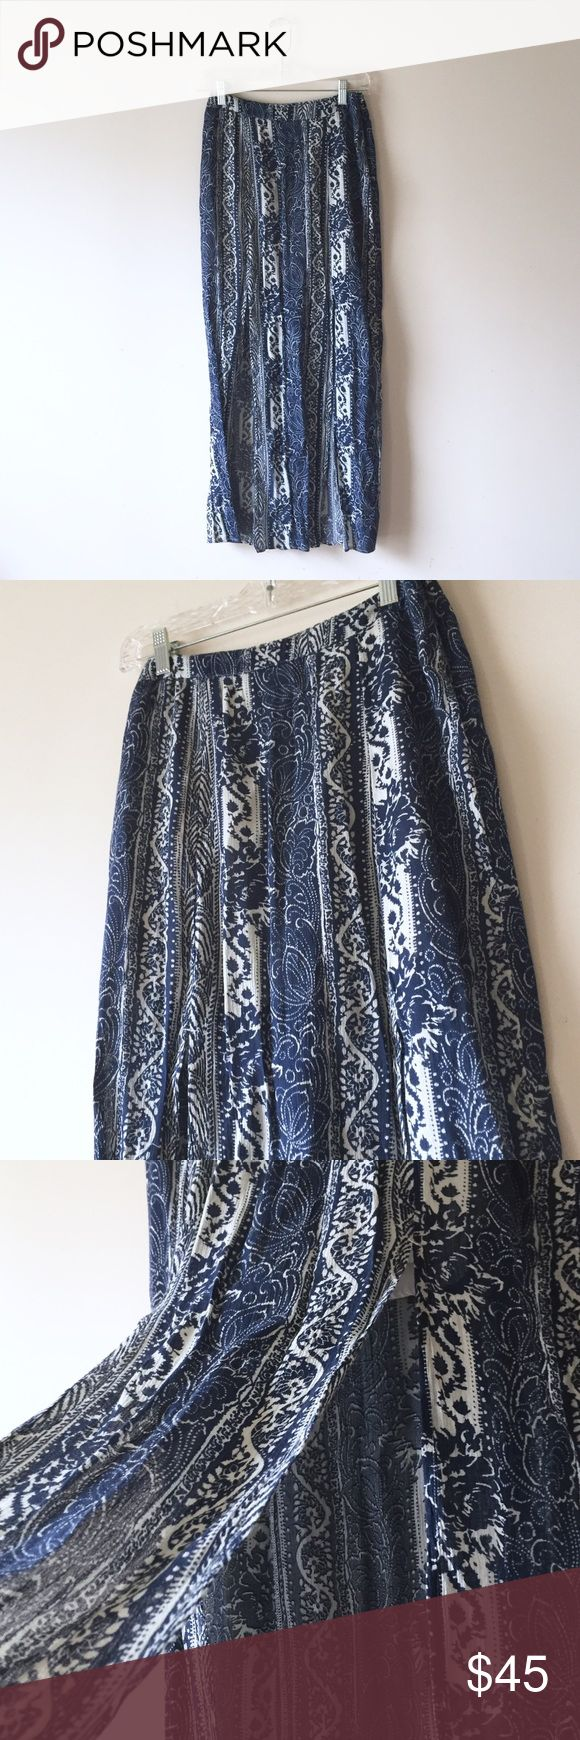 ❄️American Eagle tribal double slit maxi skirt Size 4. Blue and white tribal print. Two frontal slits, light and airy skirt. Worn once, like new. American Eagle Outfitters Skirts Maxi